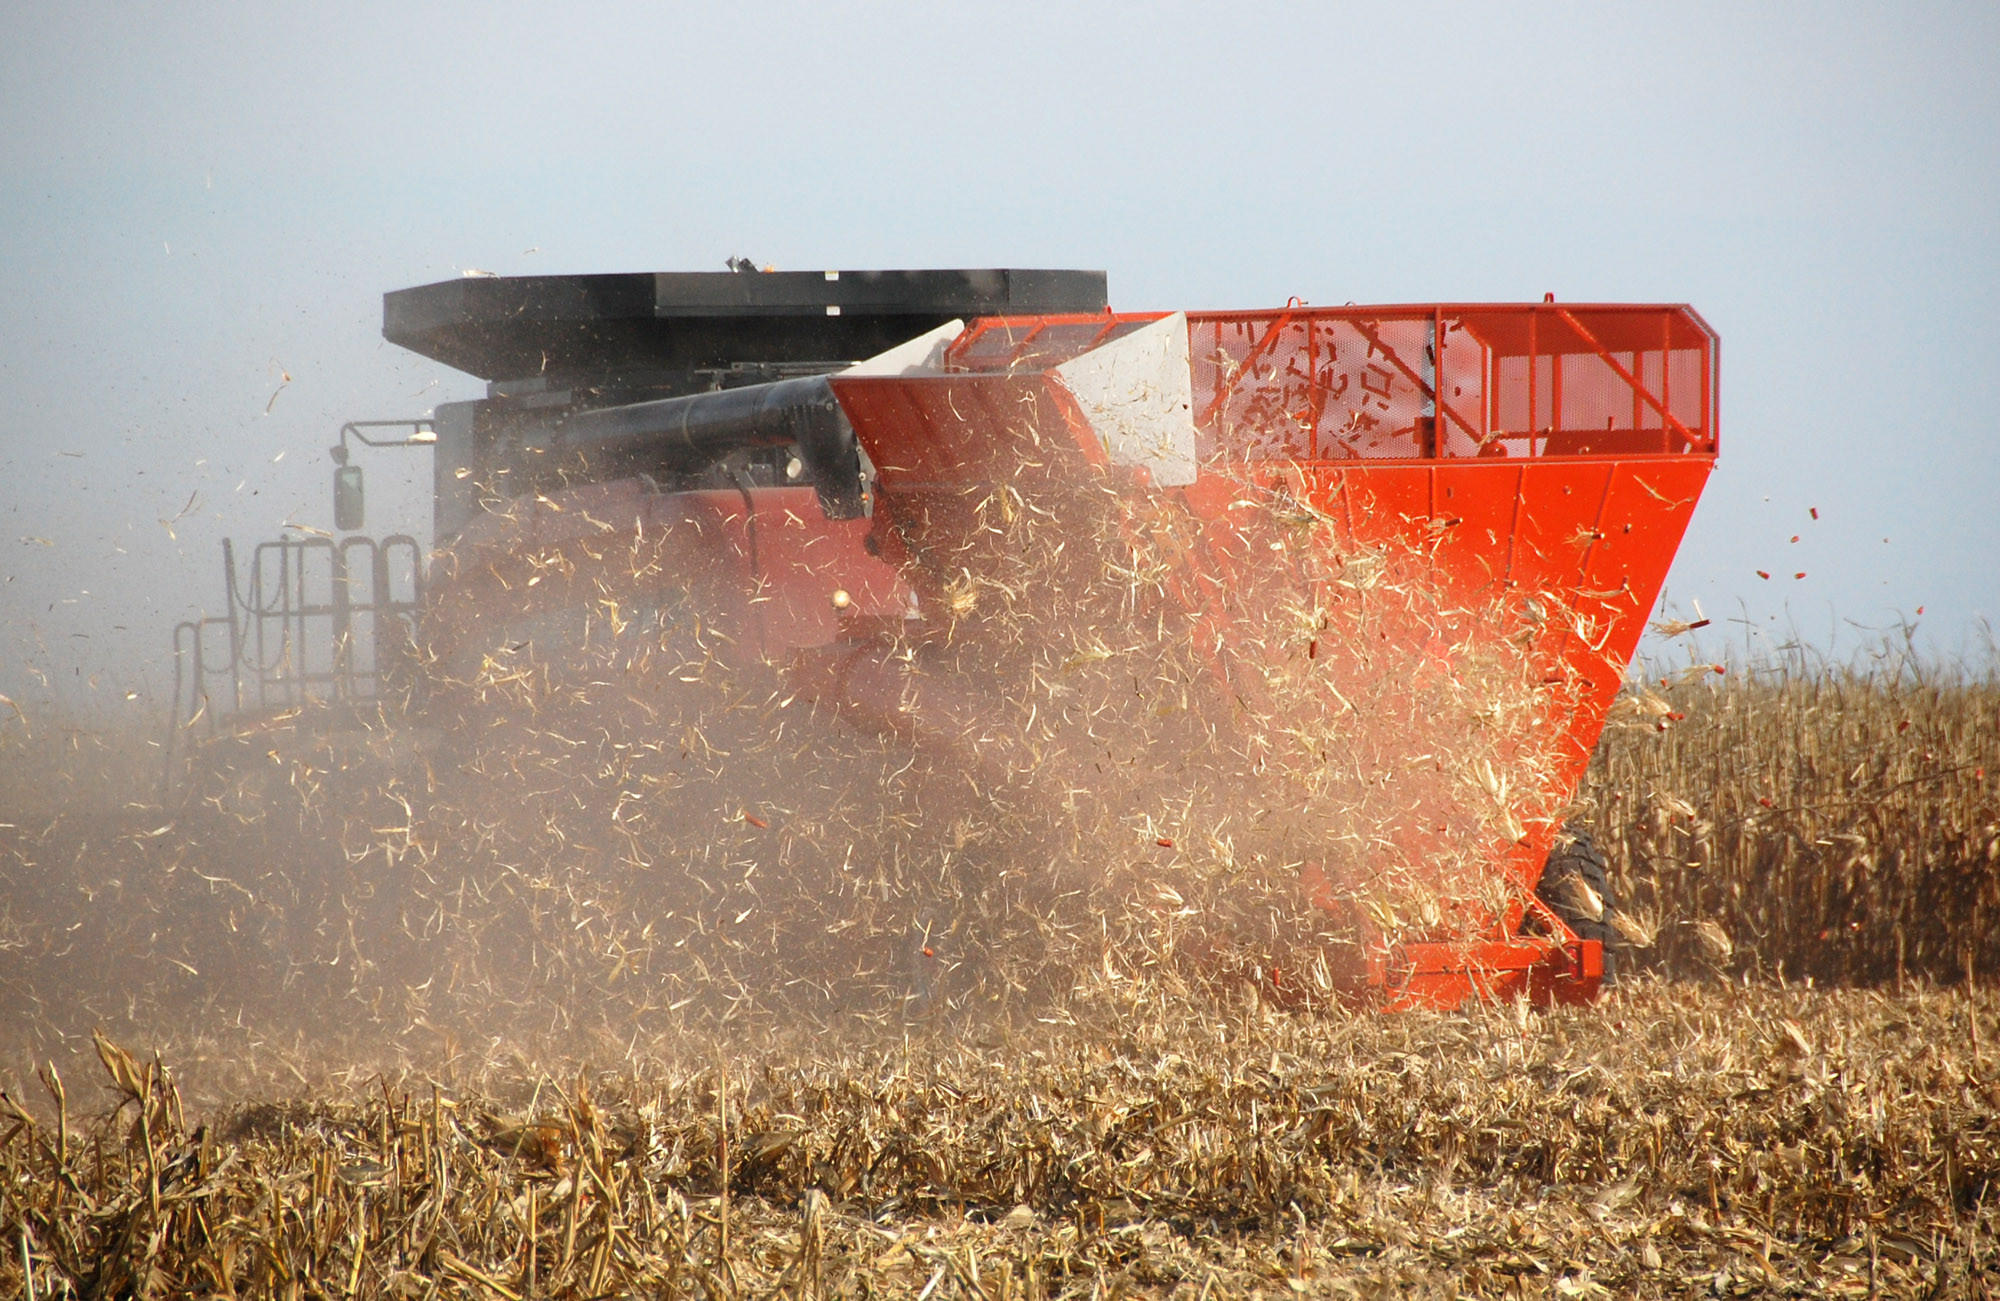 A combine hitched with a Cob Caddy gathers corn and cobs while blowing stover back into the field on a farm in South Dakota. A new report found that biofuels derived from corn stover may actually release more carbon emissions over the short run compared with gasoline.